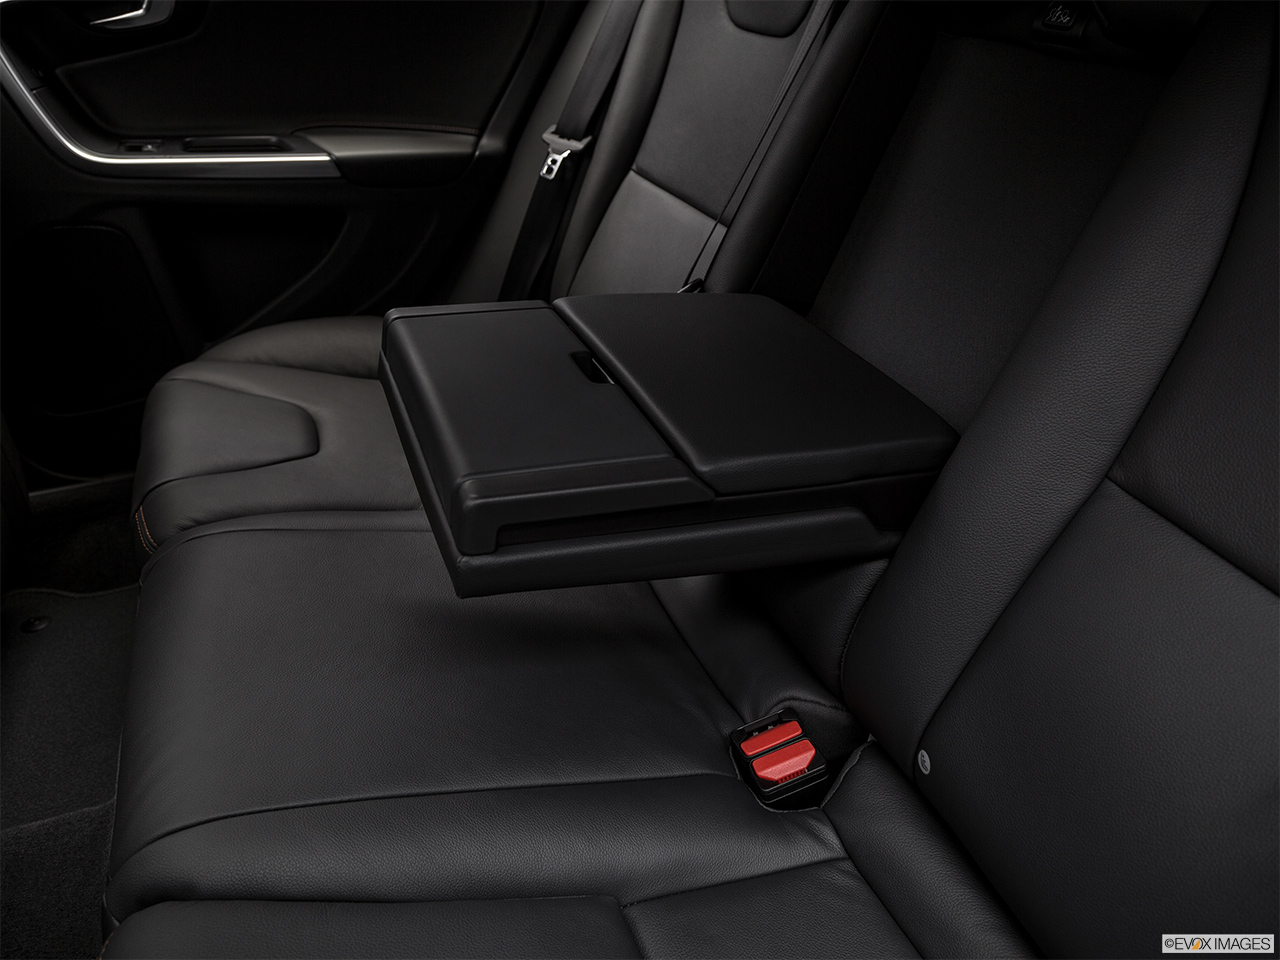 2018 Volvo V60 Cross Country T5 AWD Rear center console with closed lid from driver's side looking down.